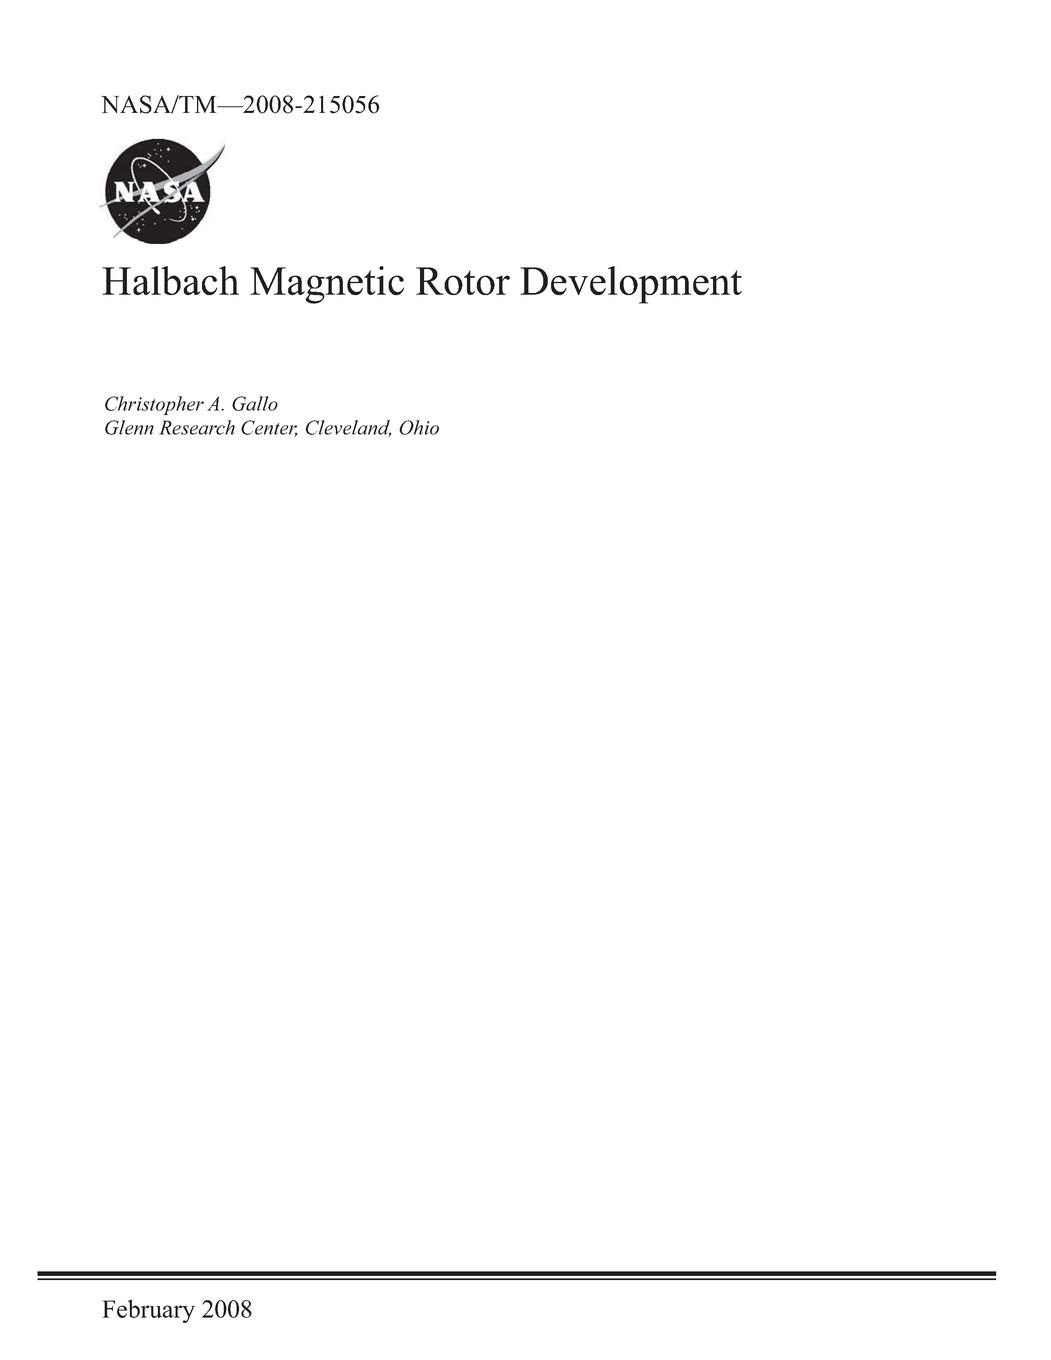 Halbach Magnetic Rotor Development: National Aeronautics and